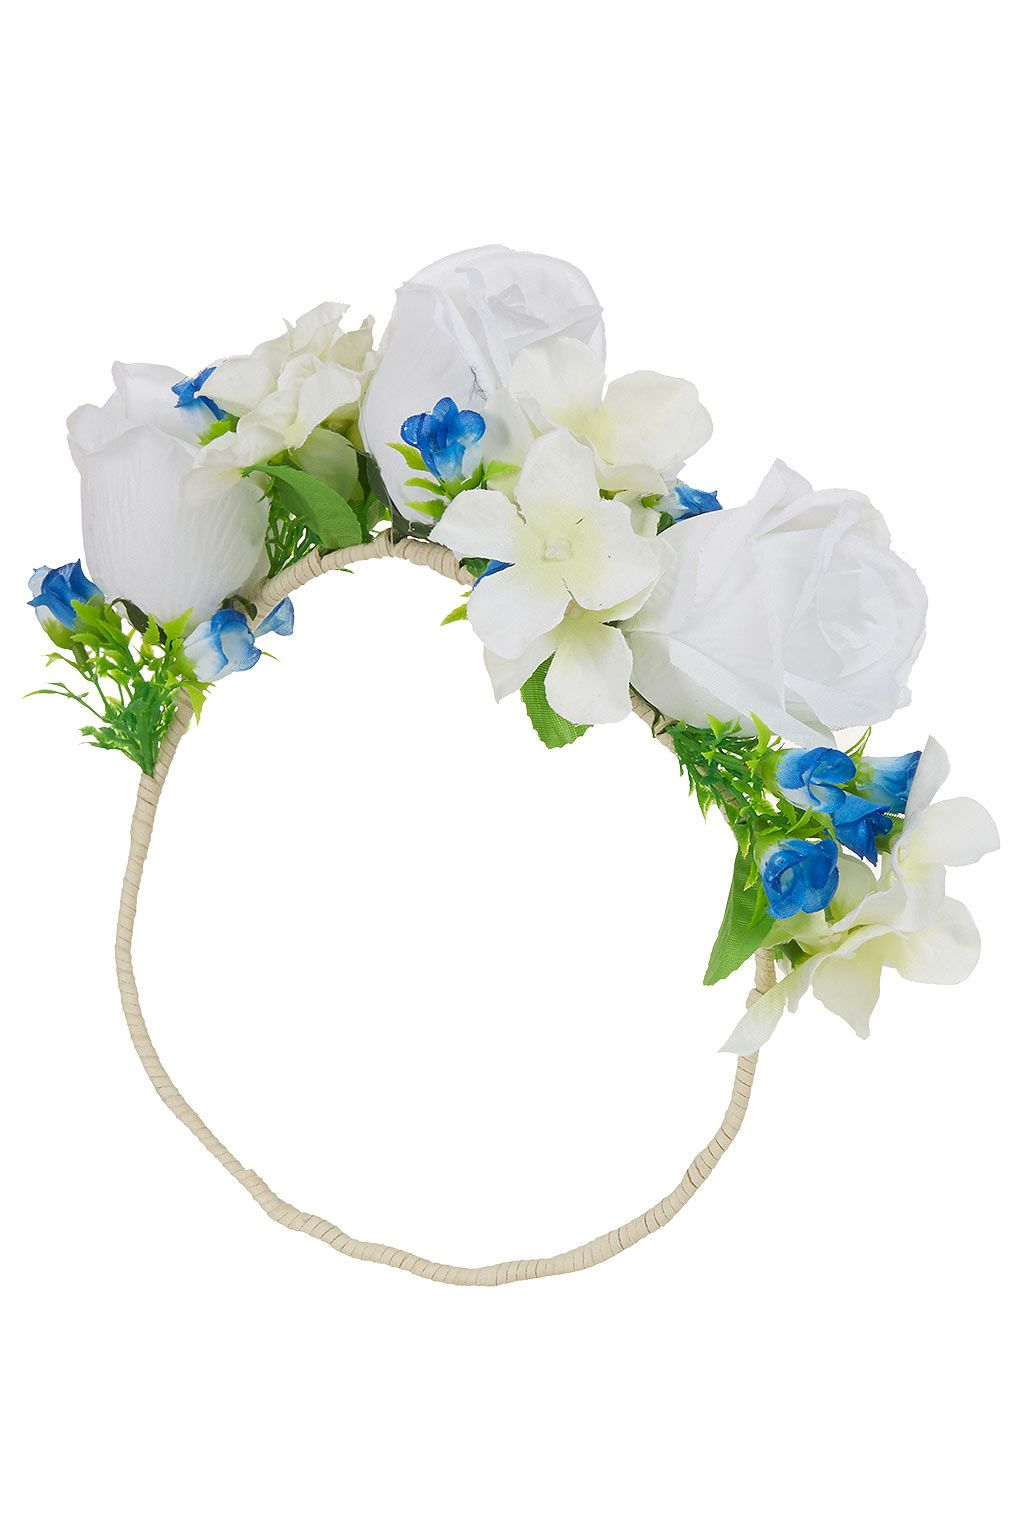 Oversize White Garland Hair Accessories Bags Accessories